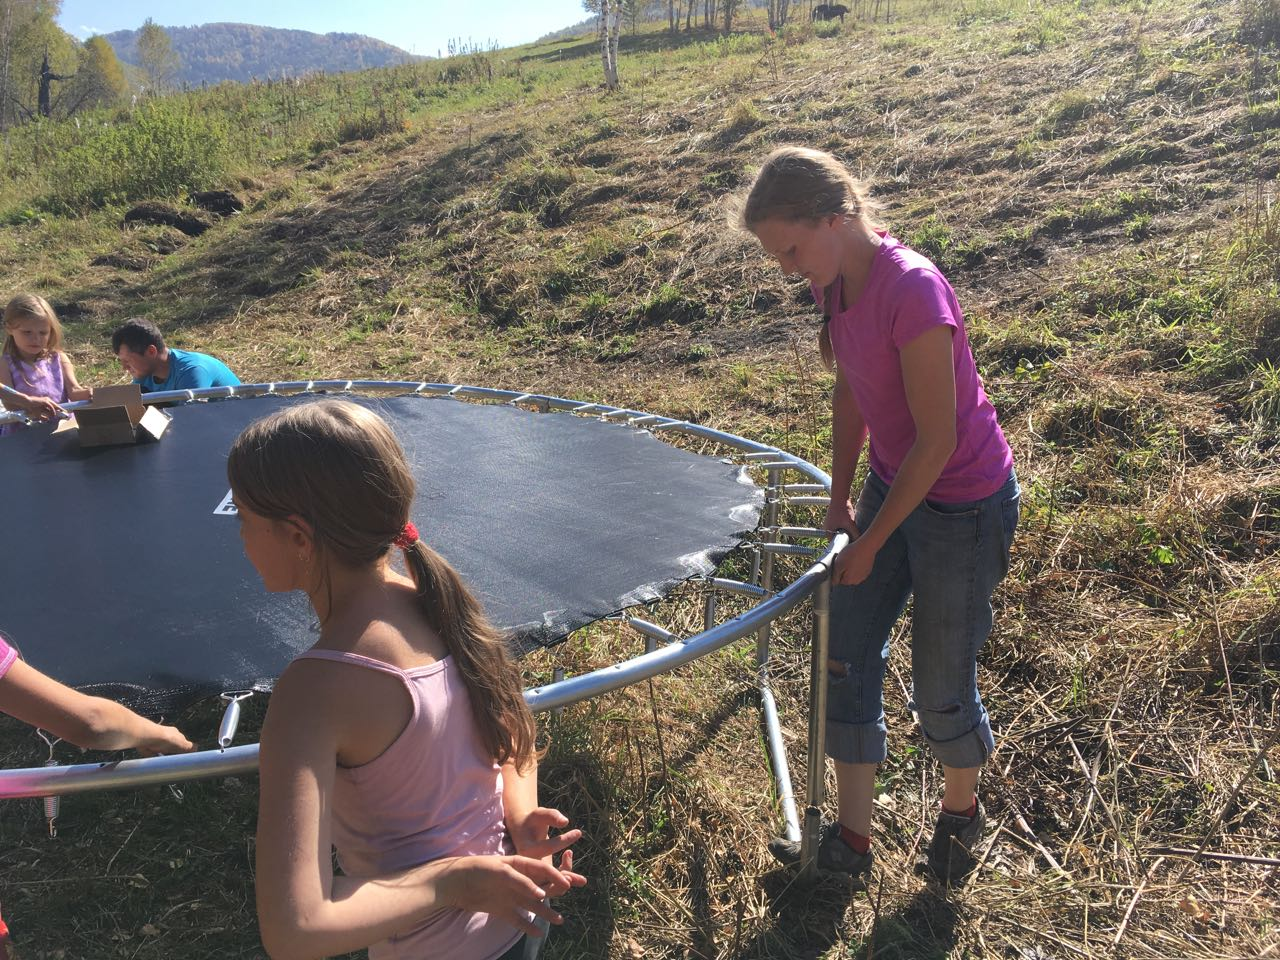 girls setting up trampoline